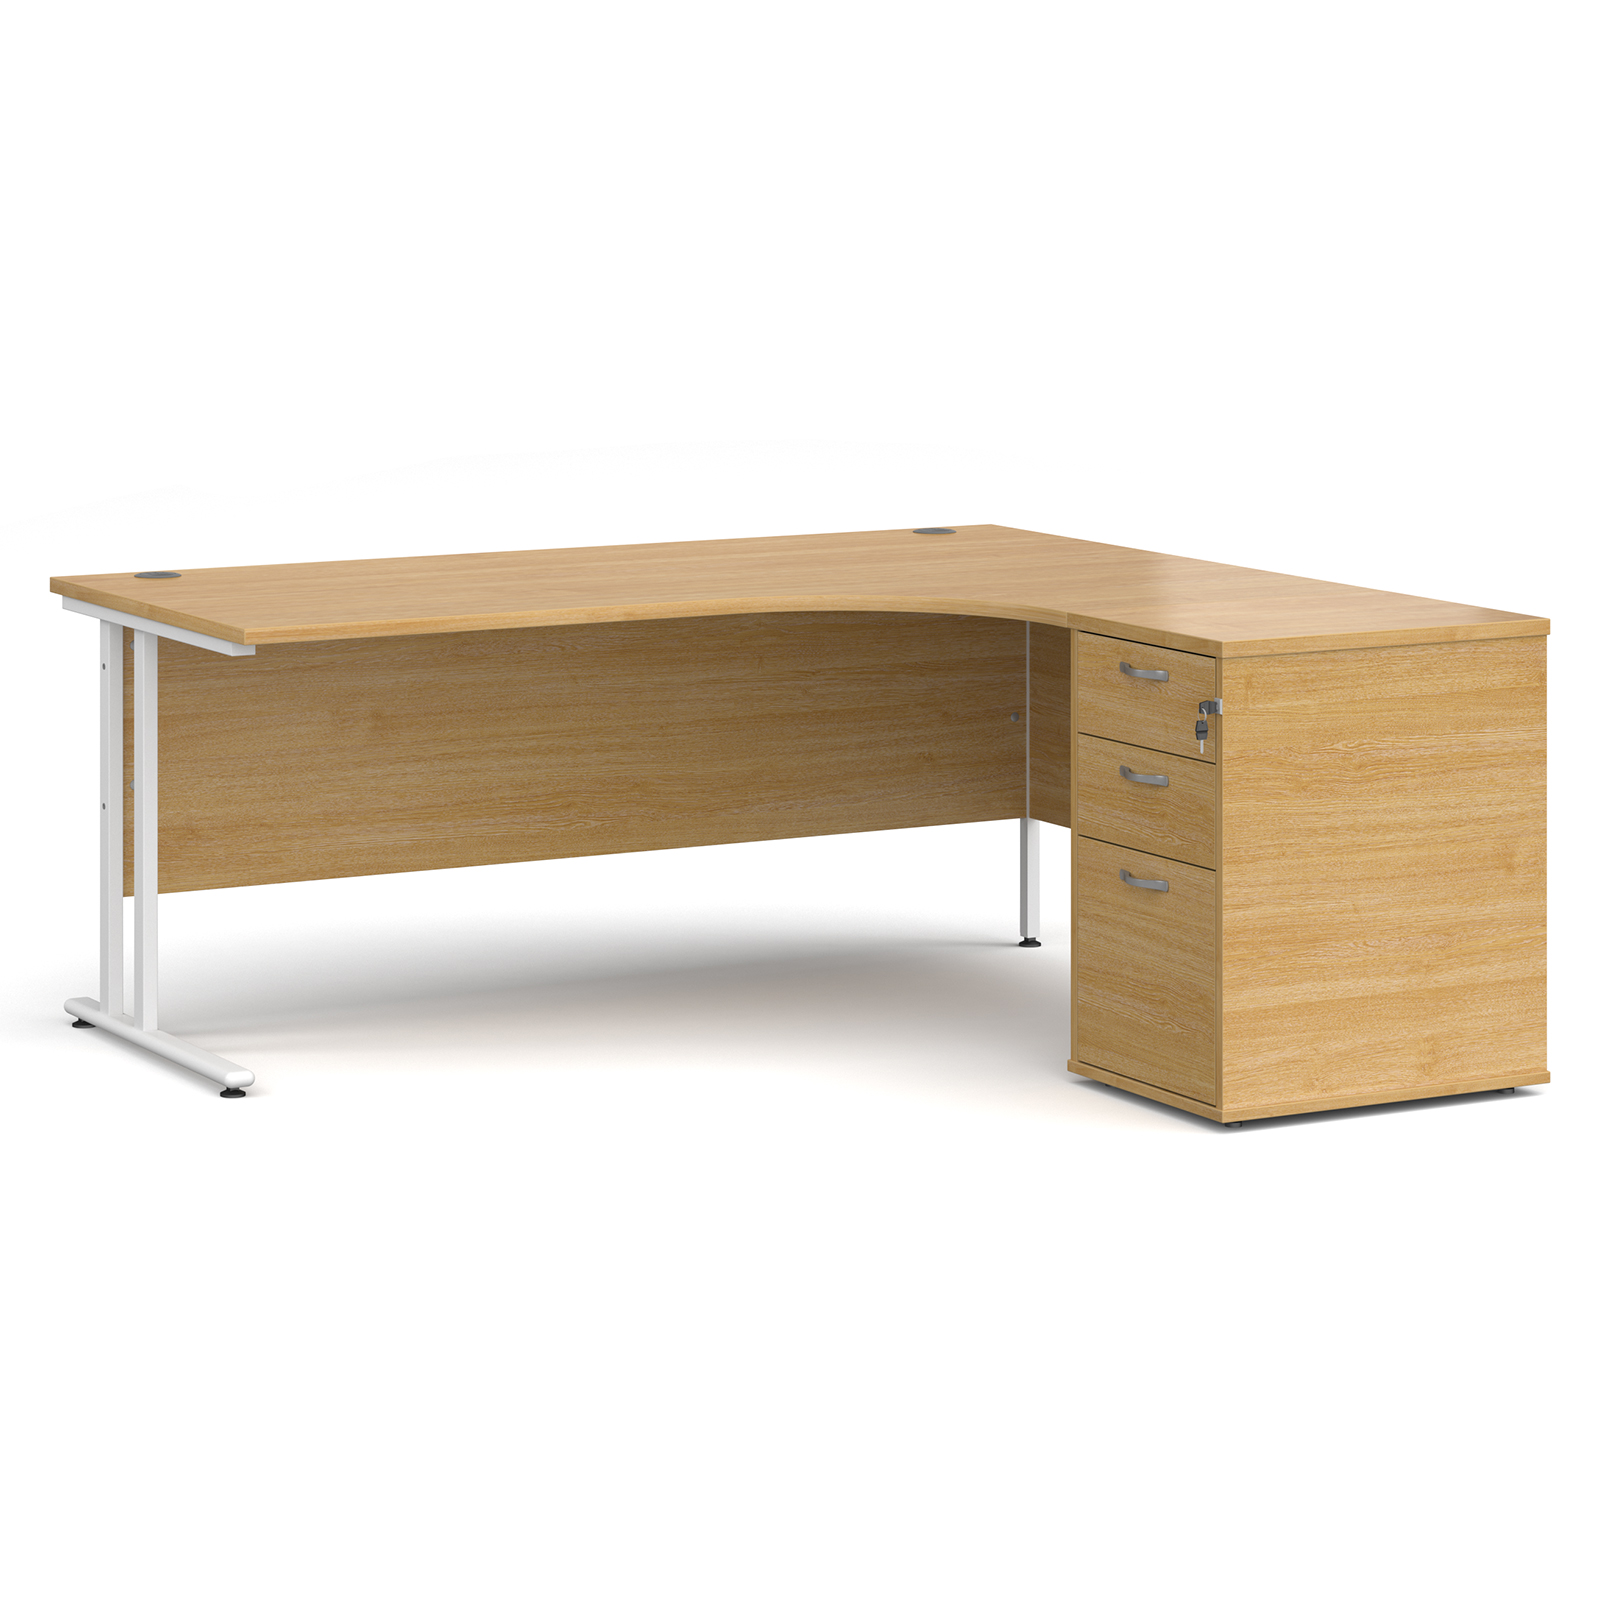 Right Handed Maestro 25 right hand ergonomic desk 1800mm with white cantilever frame and desk high pedestal - oak